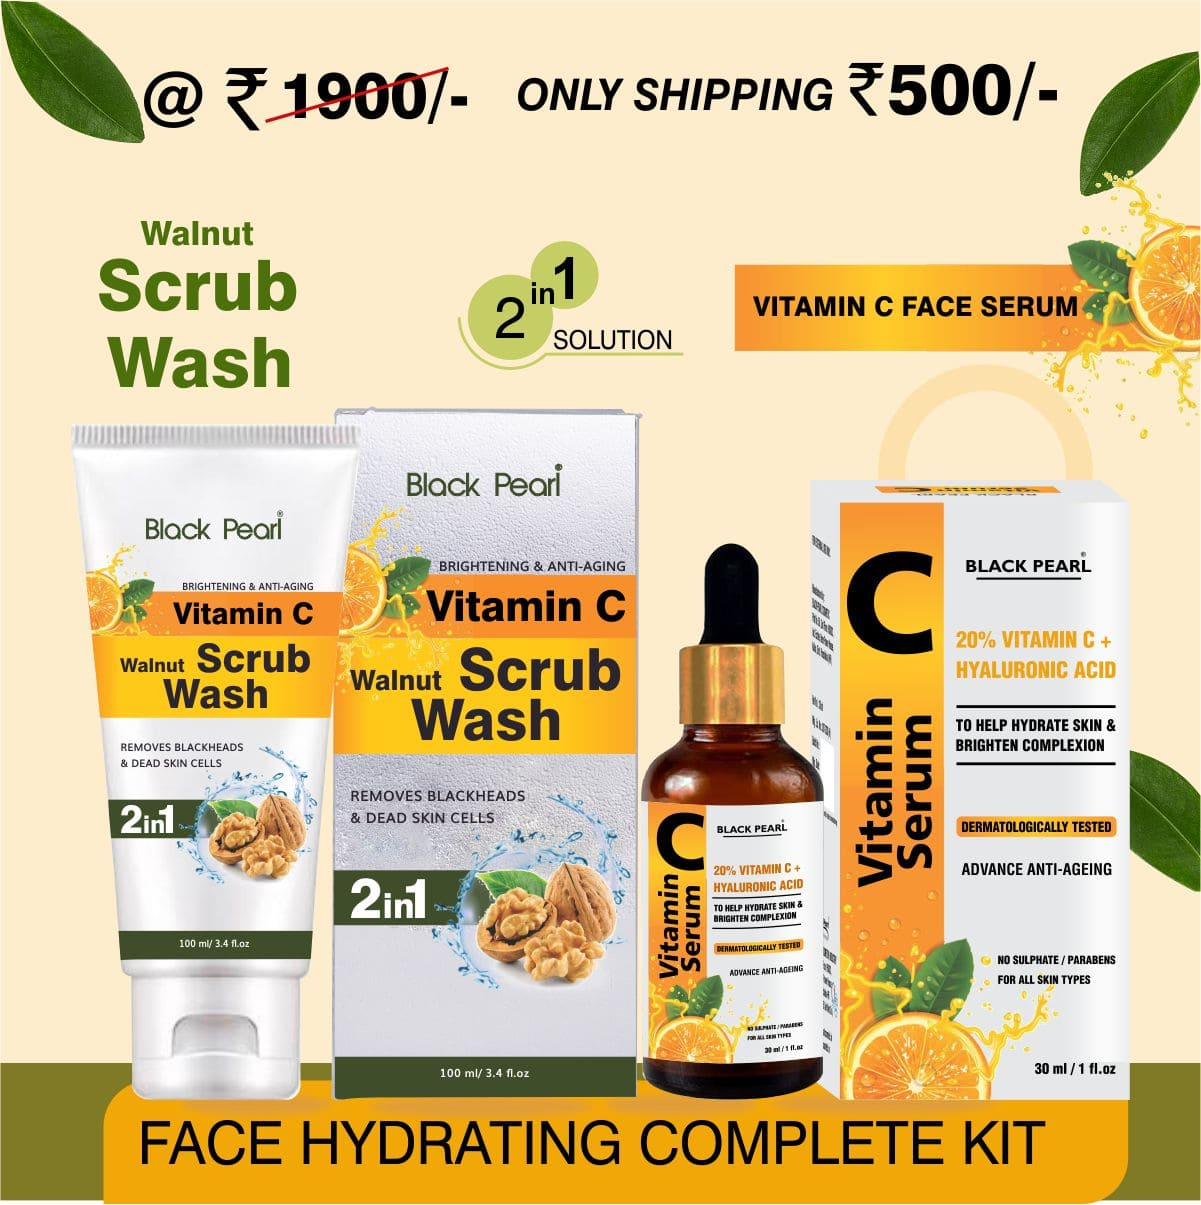 Face Hydrating Complete Kit Rs 500